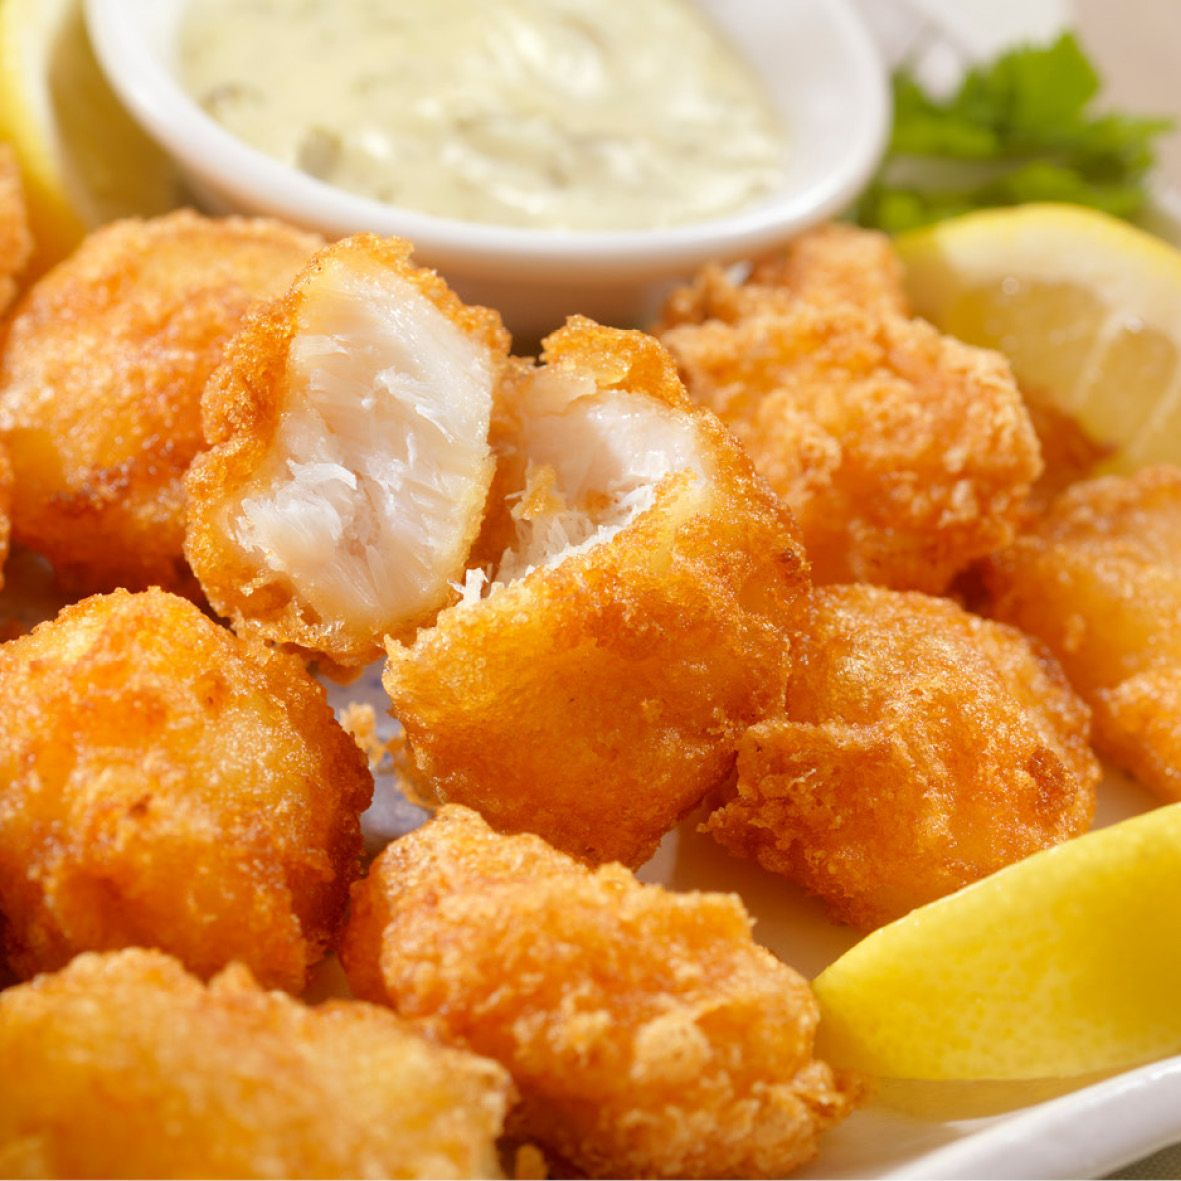 Lemony_fish_bites.jpg